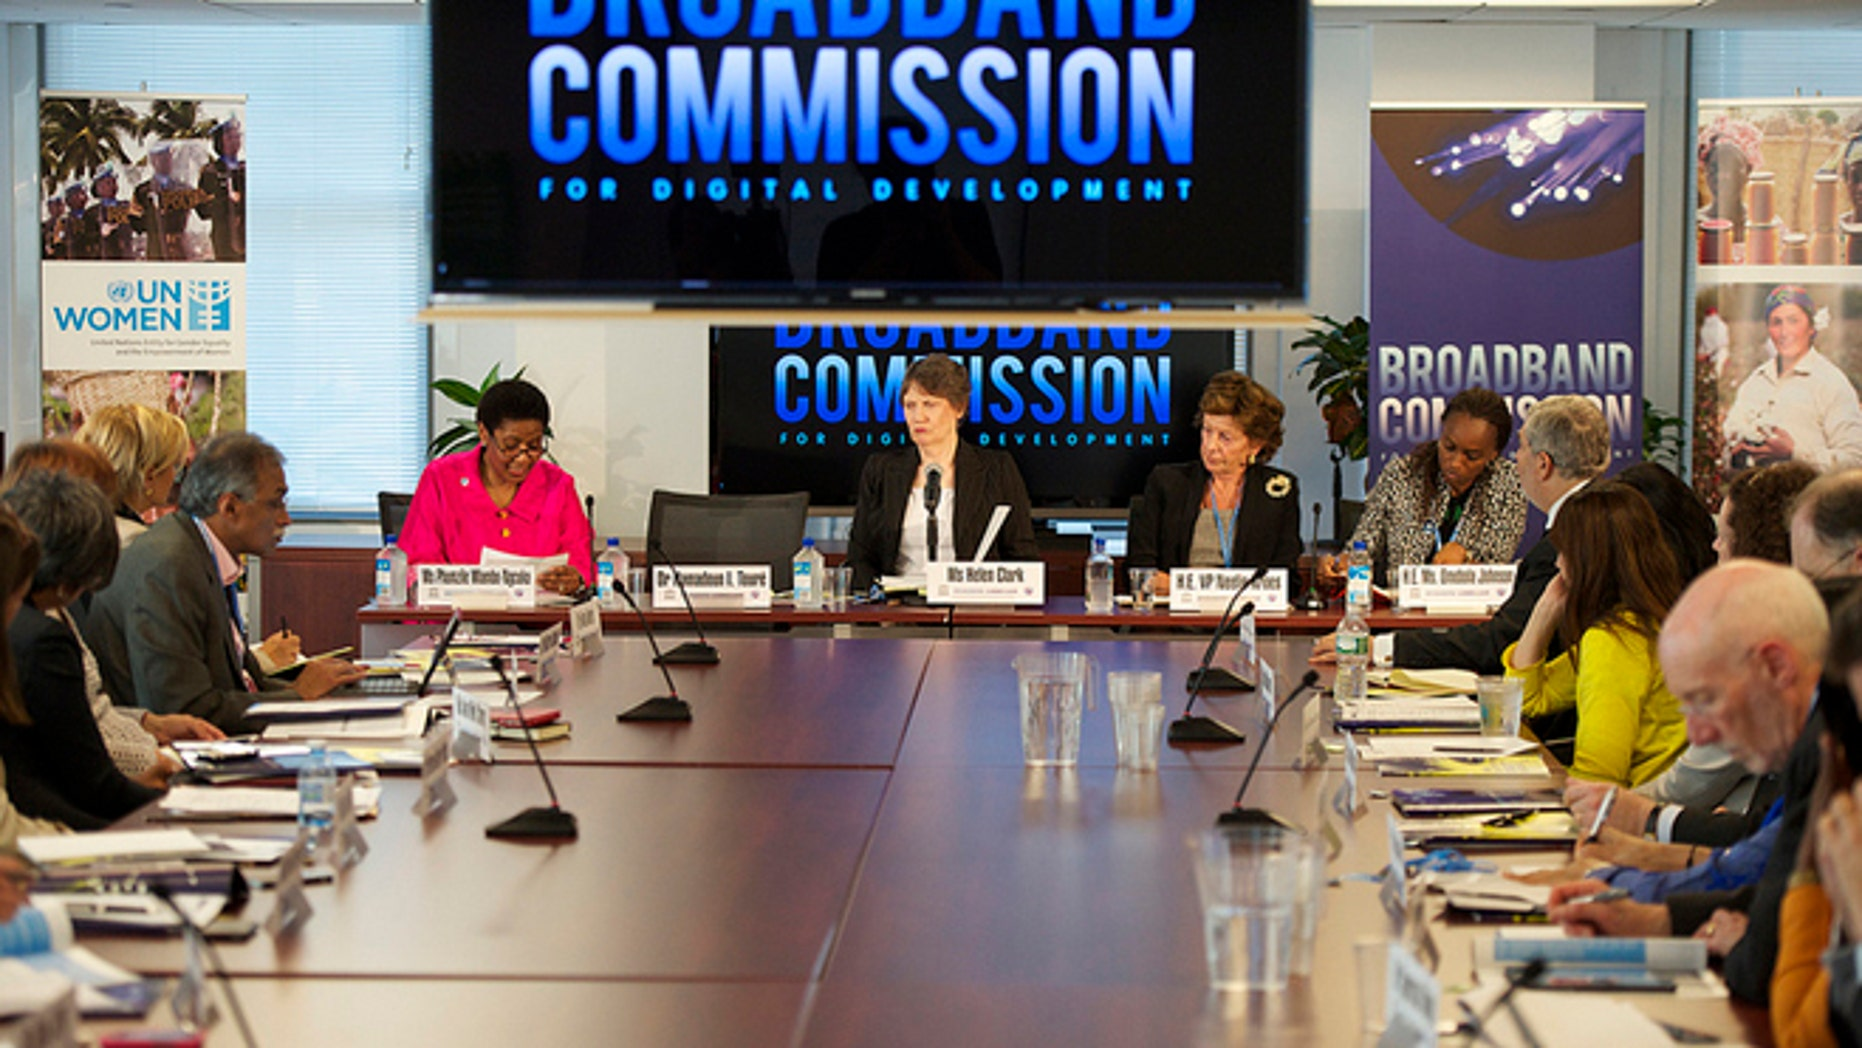 Sept. 20, 2013: The second meeting of the U.N.'s Broadband Commission Working Group on Gender meets in New York City.